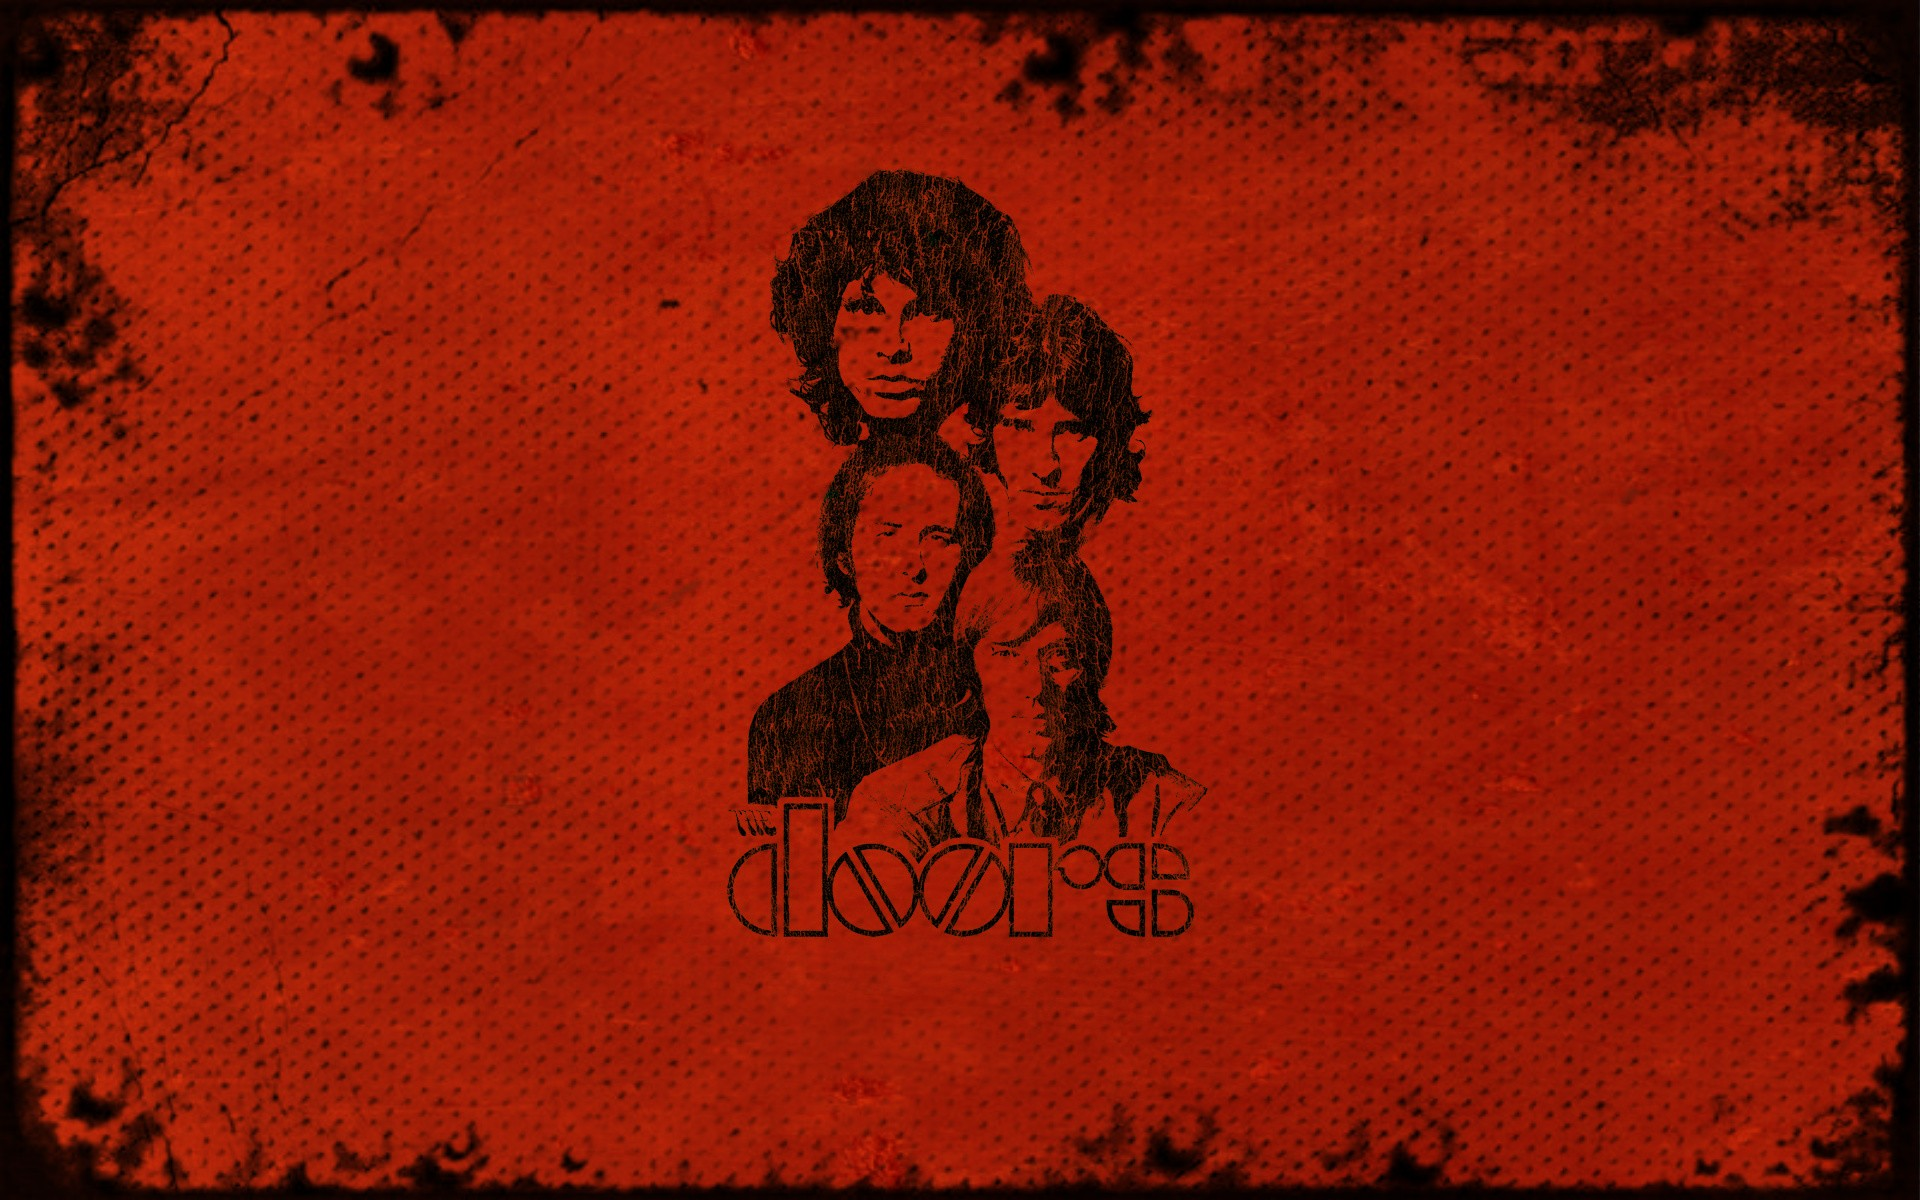 1280x1024 the doors - photo #8